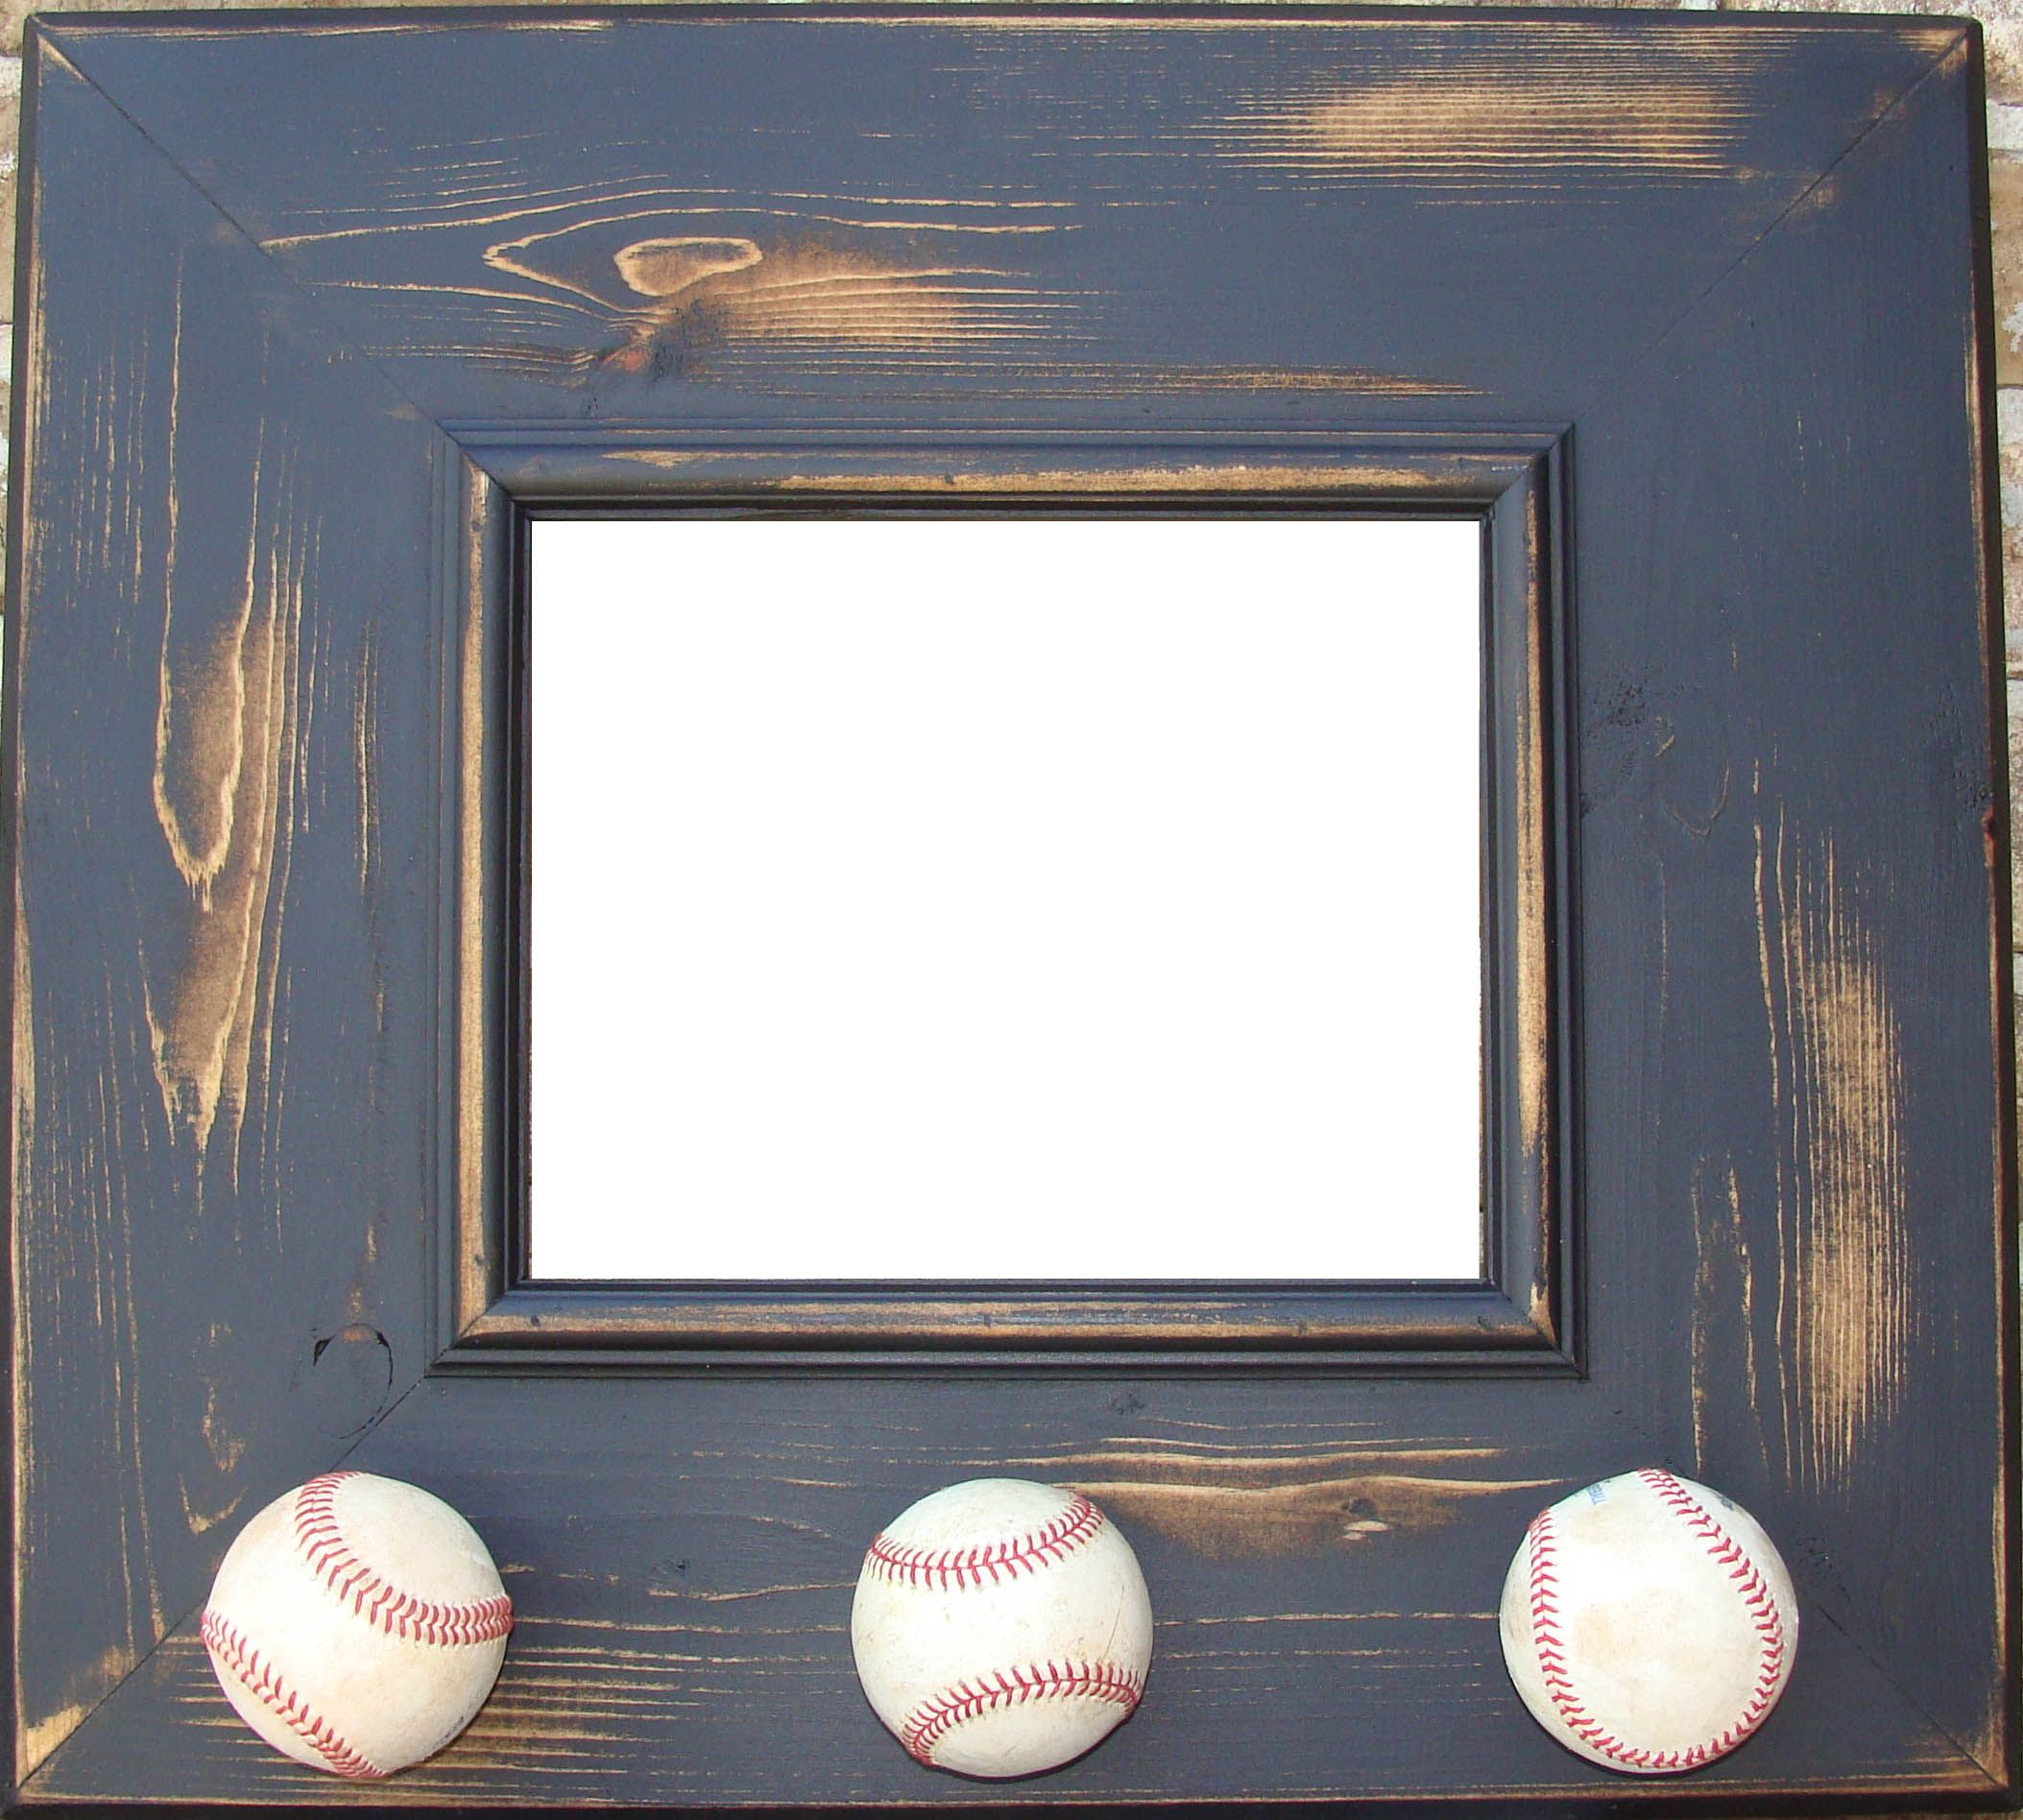 Handpainted Distressed 8x10 Baseball Wall Frame With Images Frames On Wall